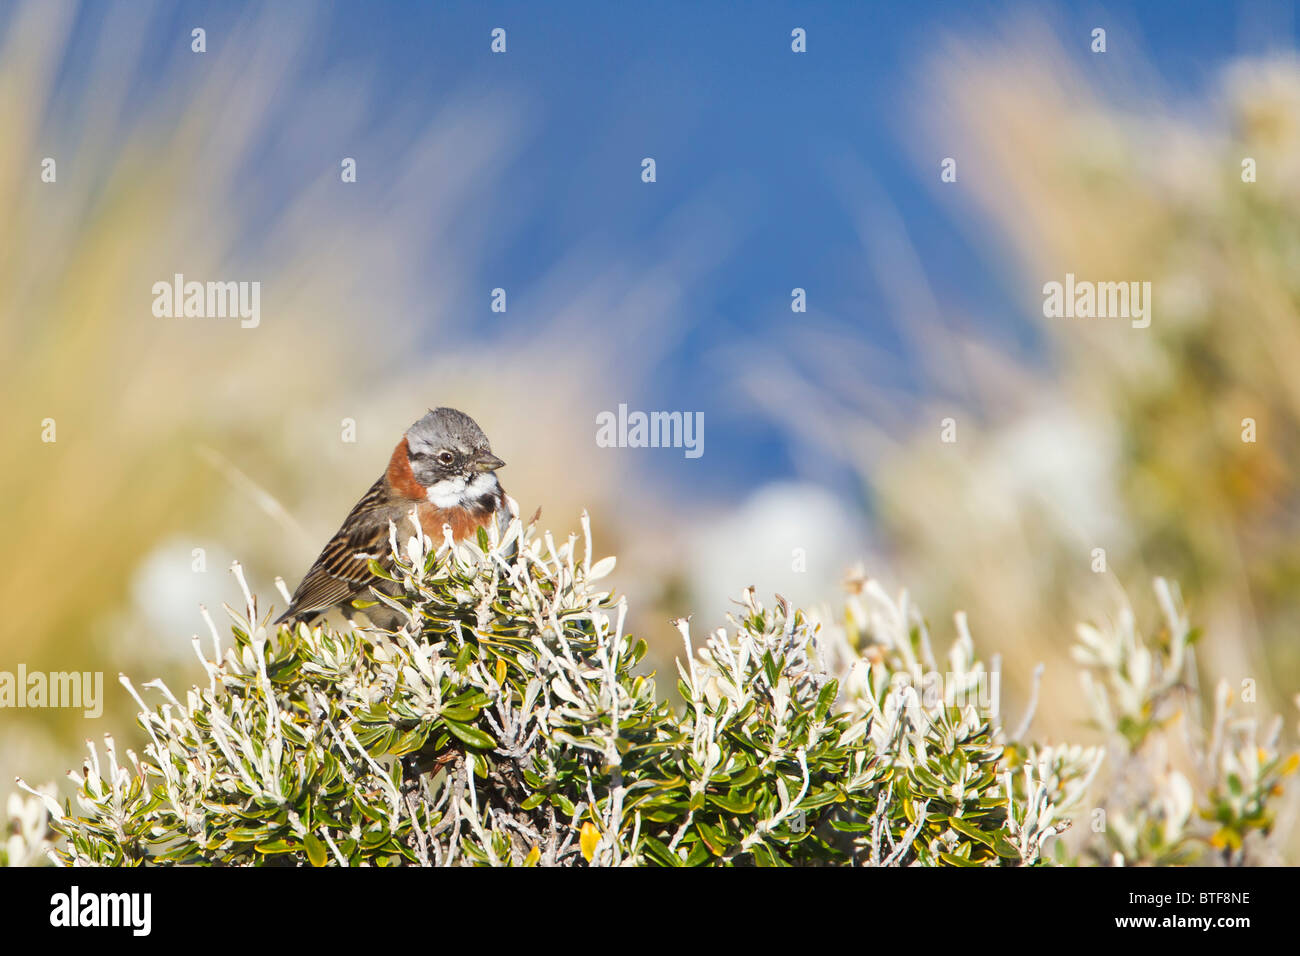 Rufous Collared Sparrow (zonotrichia capensis) perched on a shrub, spring time Tierra del Fuego Argentina Stock Photo